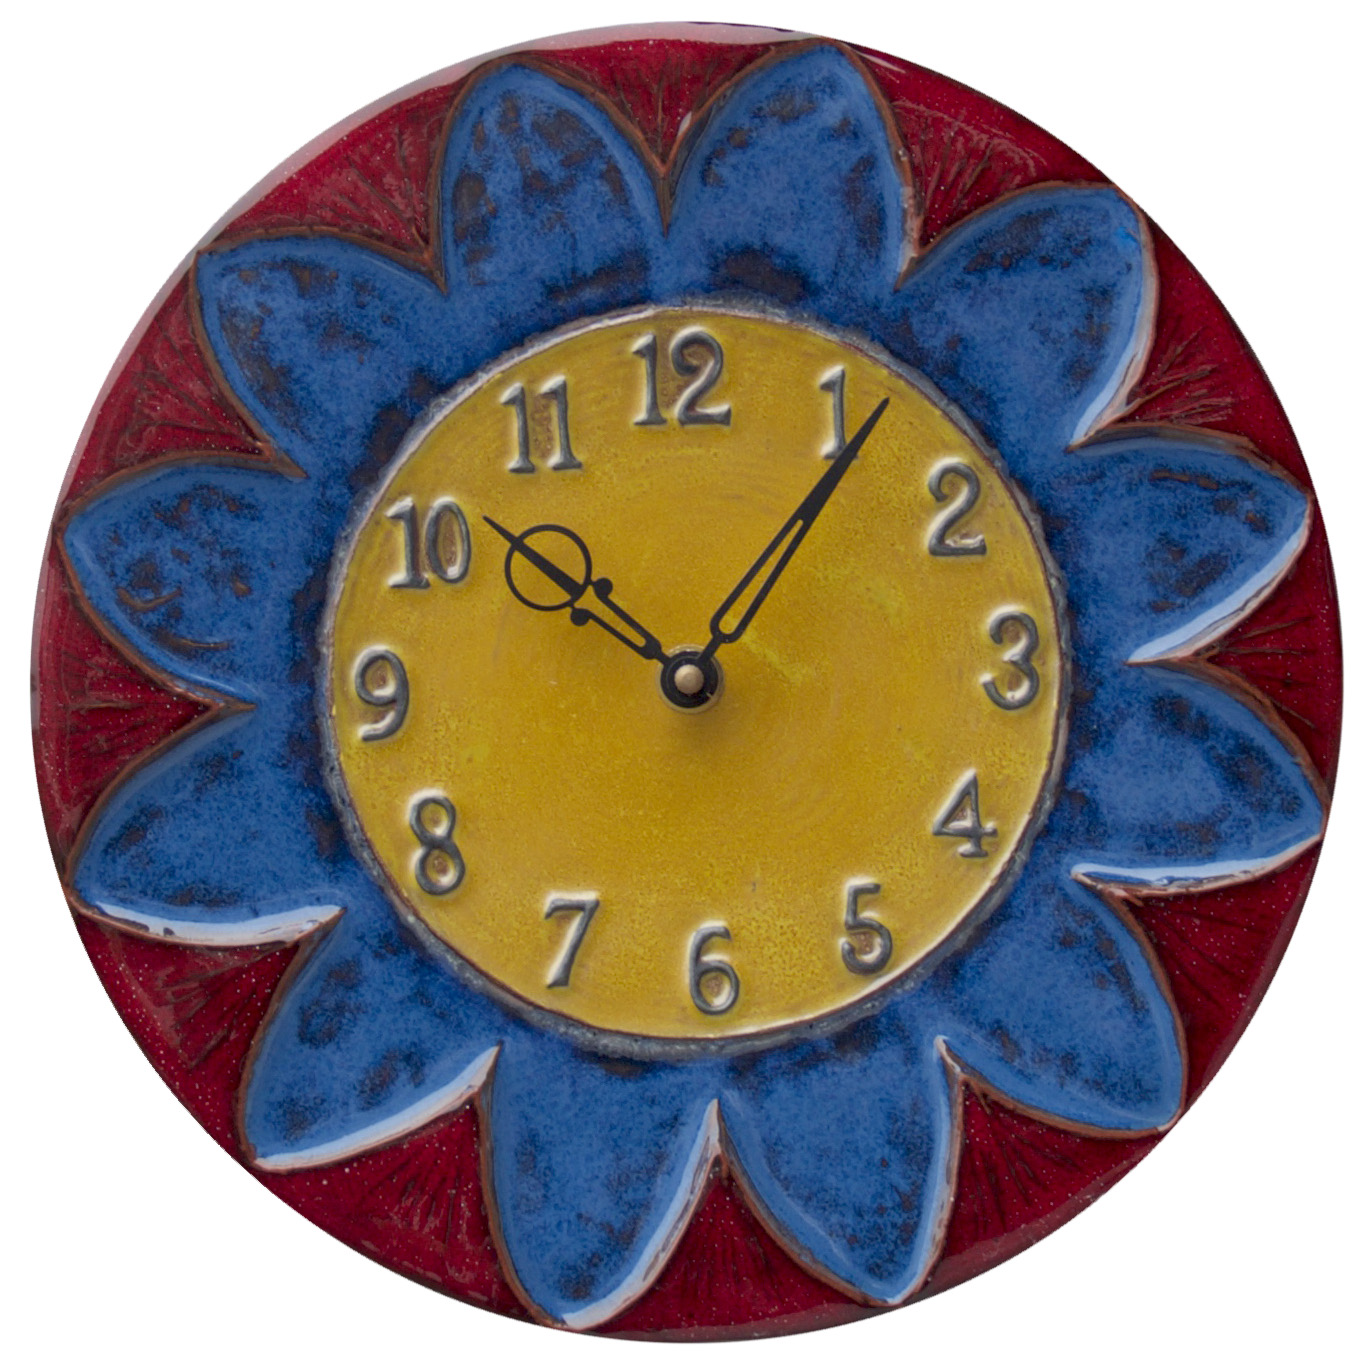 Sun Flower Ceramic Art Wall Clock in Red, Yellow & Blue- battery ...